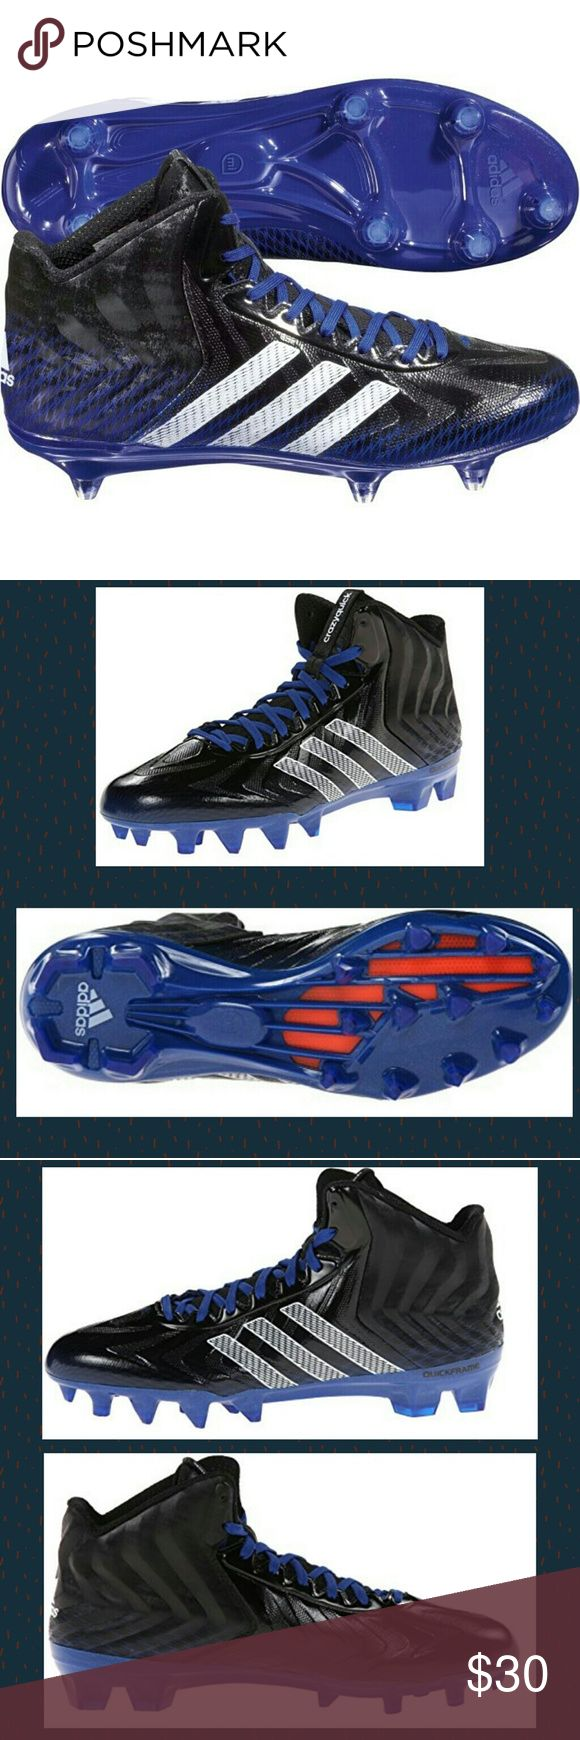 Adidas CrazyQuick Mid D Football Cleats Sz 14 BRAND NEW W/TAGS Adidas brand CrazyQuick Mid D Football Cleats- Black/White/Blue Size 14US/13.5D/13.5UK/49 1/3F/320J/305CHN.  -Techfit upper is engineered for natural, flexible support and a seamless, sock-like fit -Quickweb mesh and cambrelle synthetic upper for maximum lightweight strength -Comfortable textile lining -Anatomically molded ethylene vinyl acetate insole for perfect blend of support and comfort -Molded quickform heel padding for…